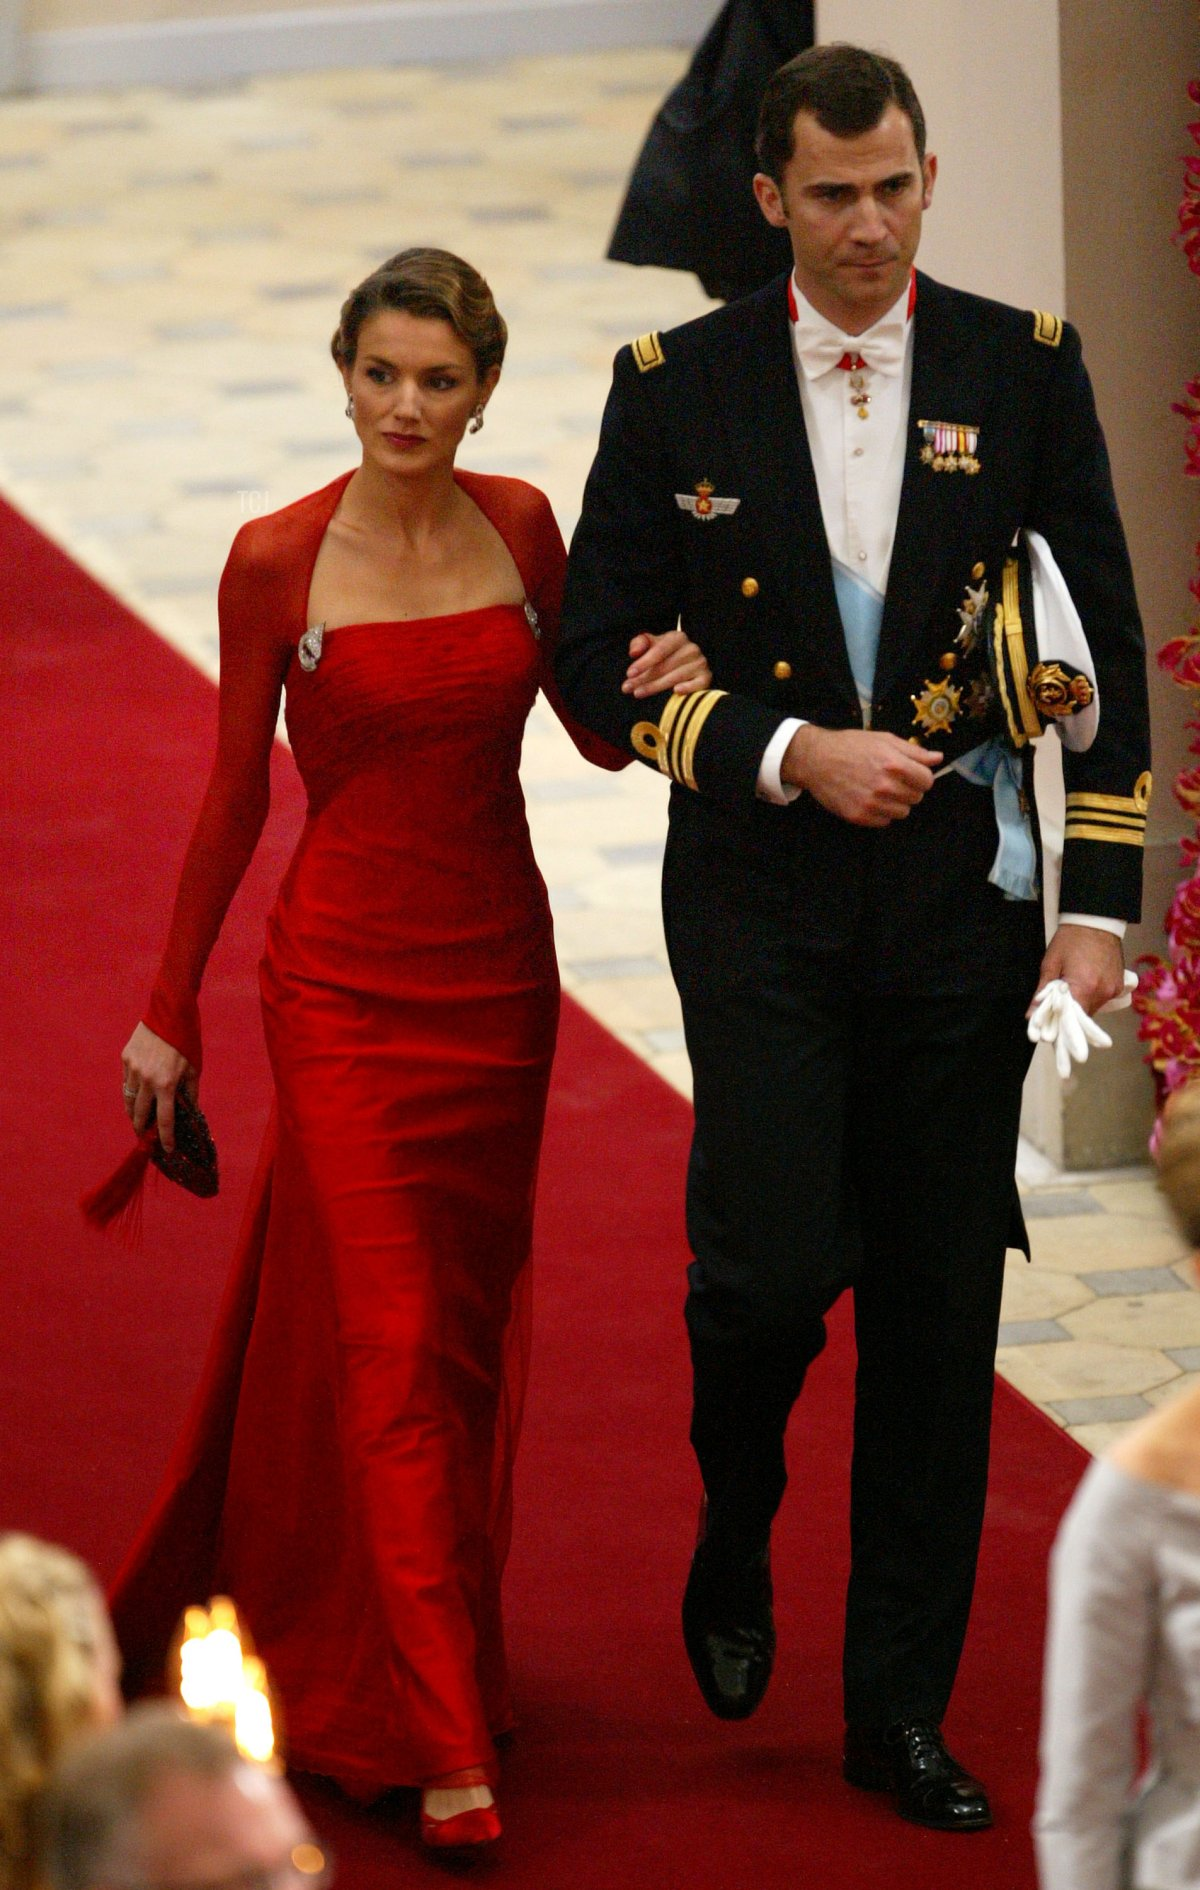 Crown Prince Felipe of Spain and his fiancee Letizia Ortiz Rocasolano attend the wedding of Danish Crown Prince Frederik and Miss Mary Elizabeth Donaldson at Copenhagen Cathedral on May 14, 2004 in Copenhagen, Denmark